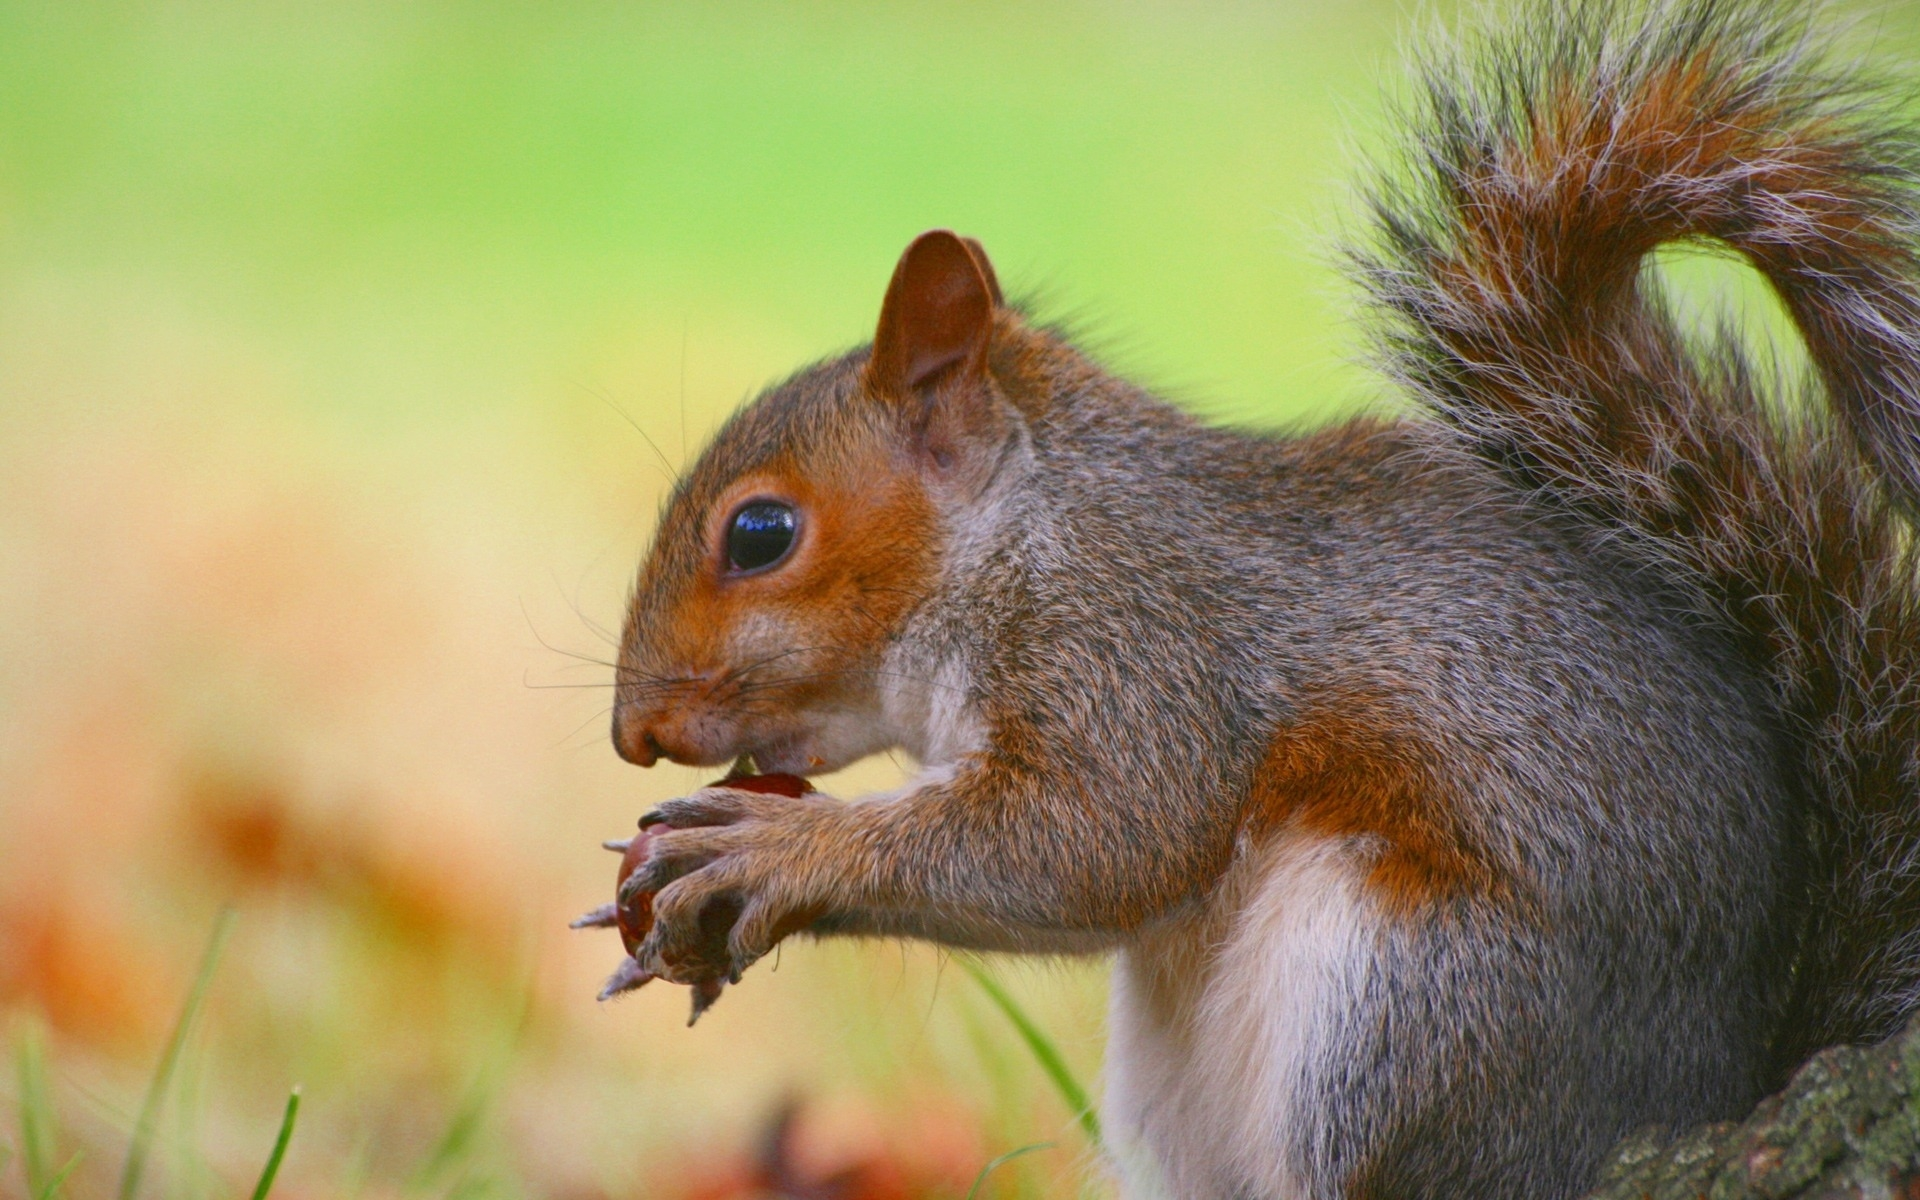 Baby fox squirrel pictures Eastern Gray Squirrel - Animal Kingdom Facts and Pictures